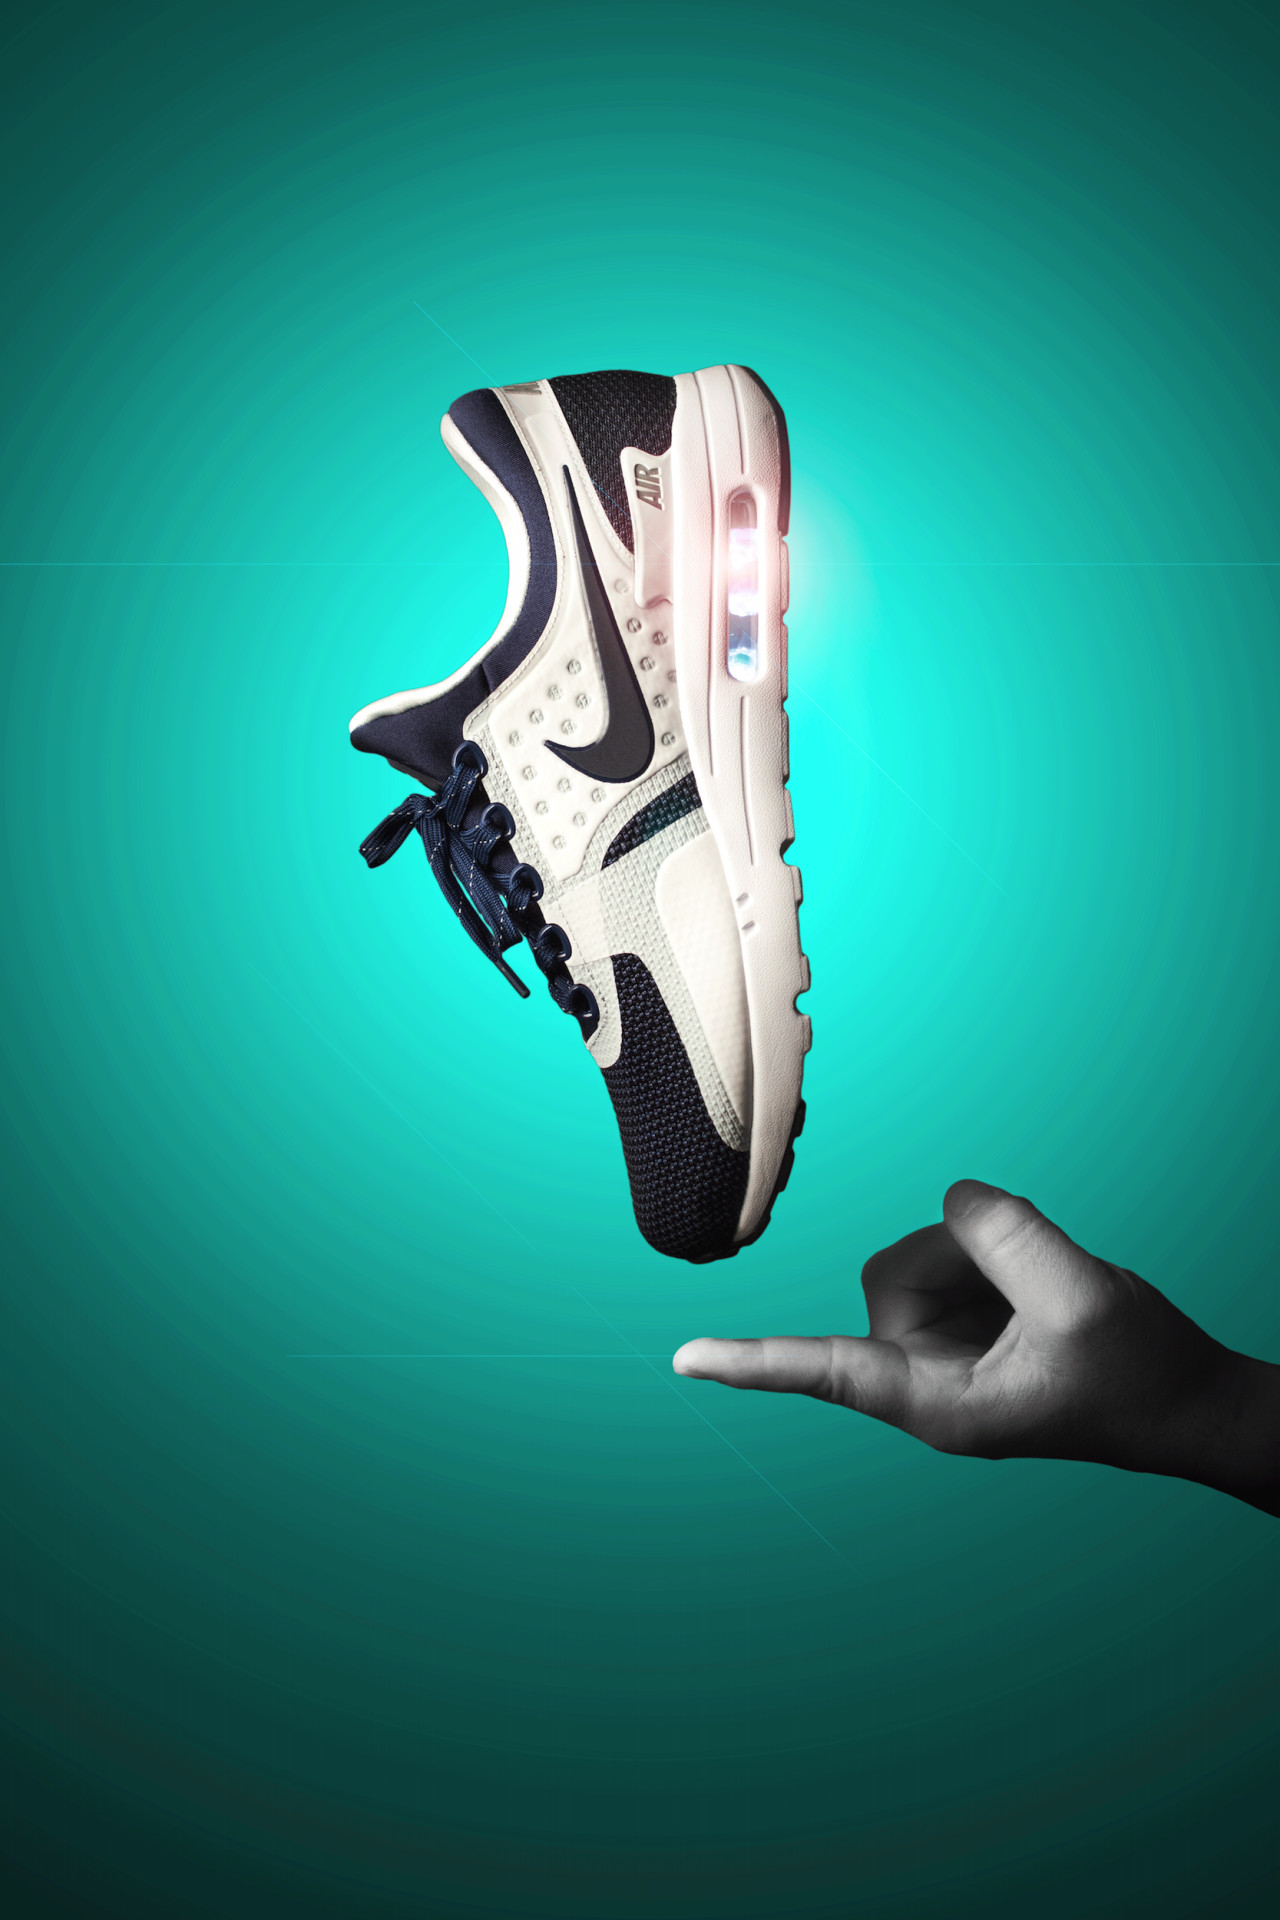 Vagrant Sneaker – Nike Air Max Zero wallpaper for your iPhone or.